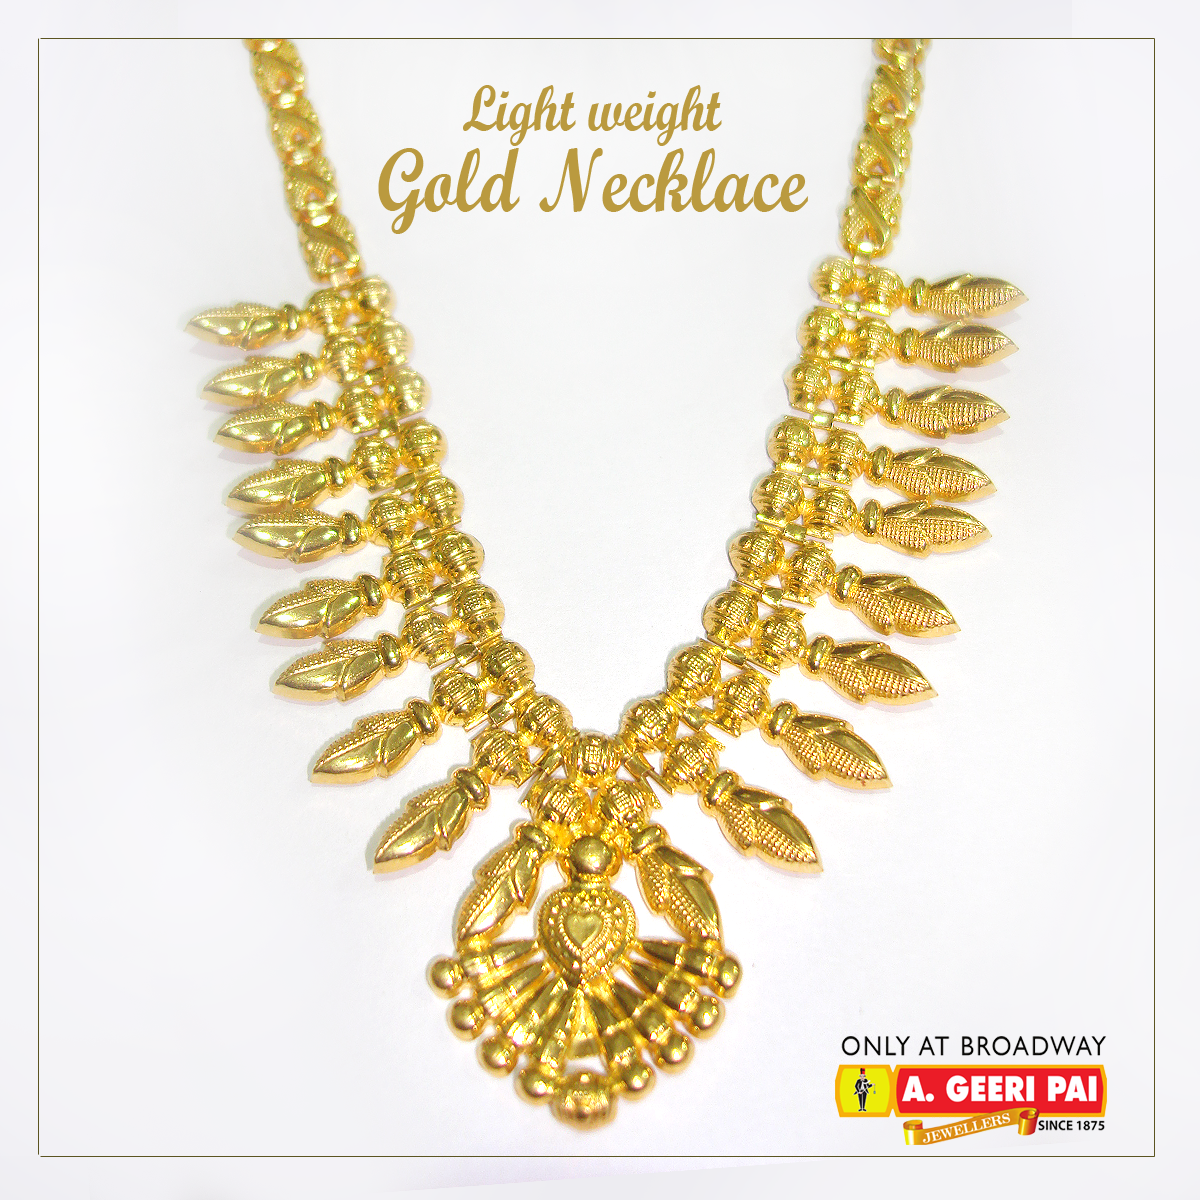 pure designs popular best necklace with weight the in light gold of awesome pic and fashion styles today inspiration for grams women latest trends